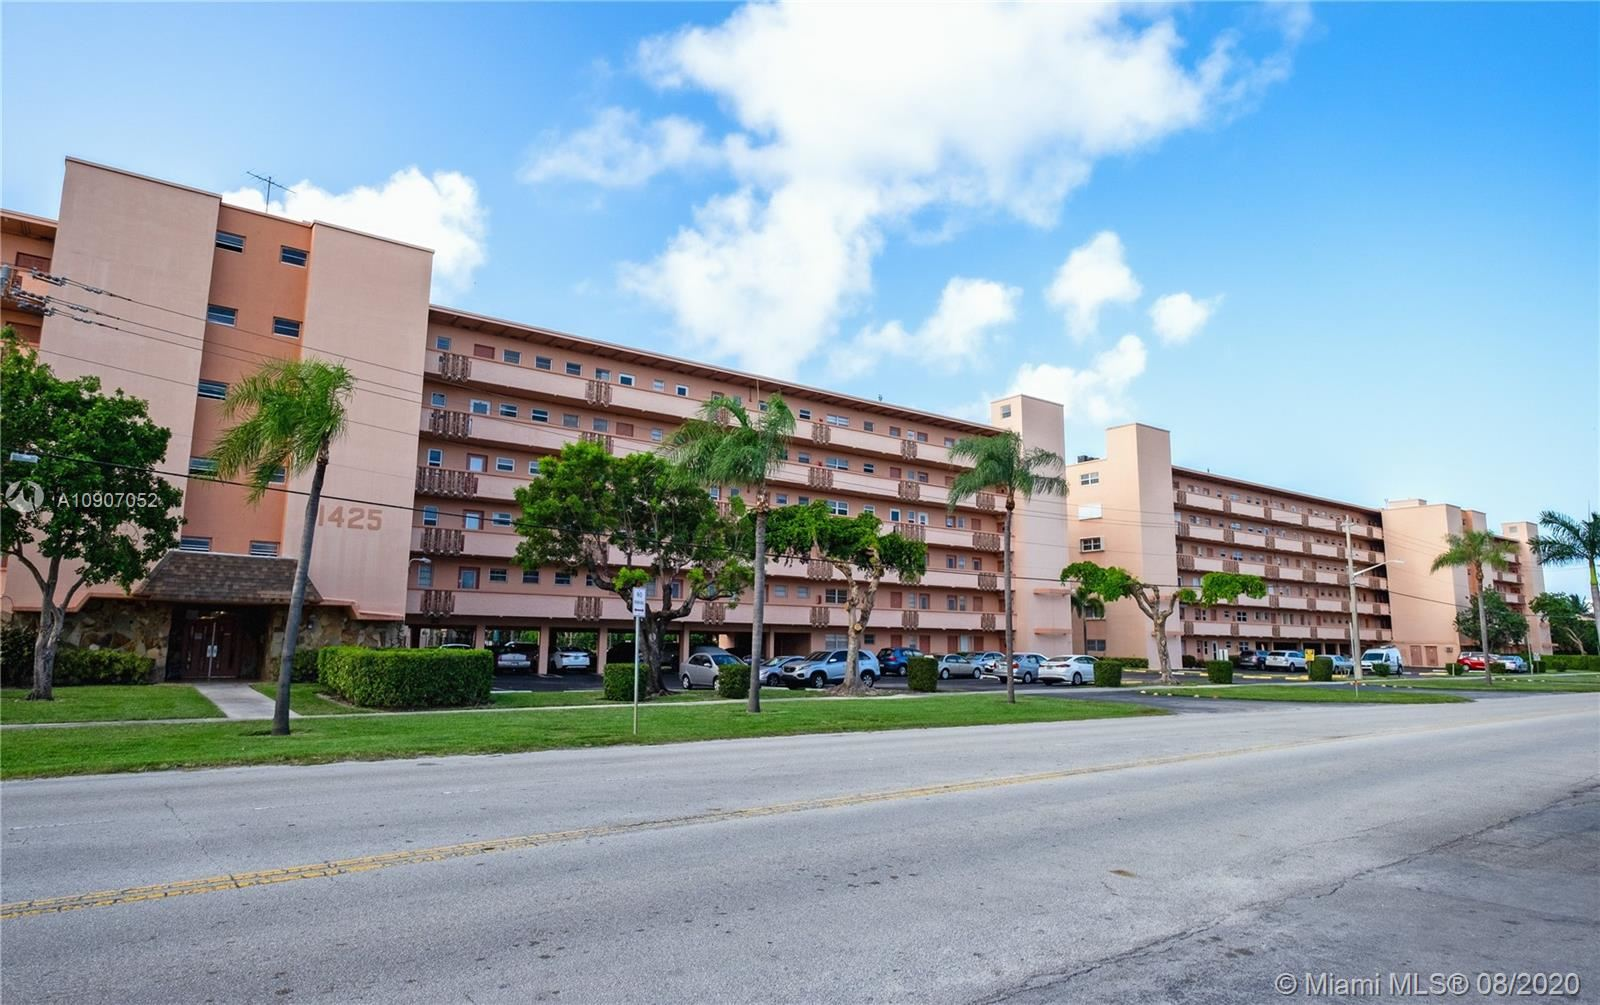 1425 Atlantic Shores Blvd #406, Hallandale Beach, FL 33009 - #: A10907052